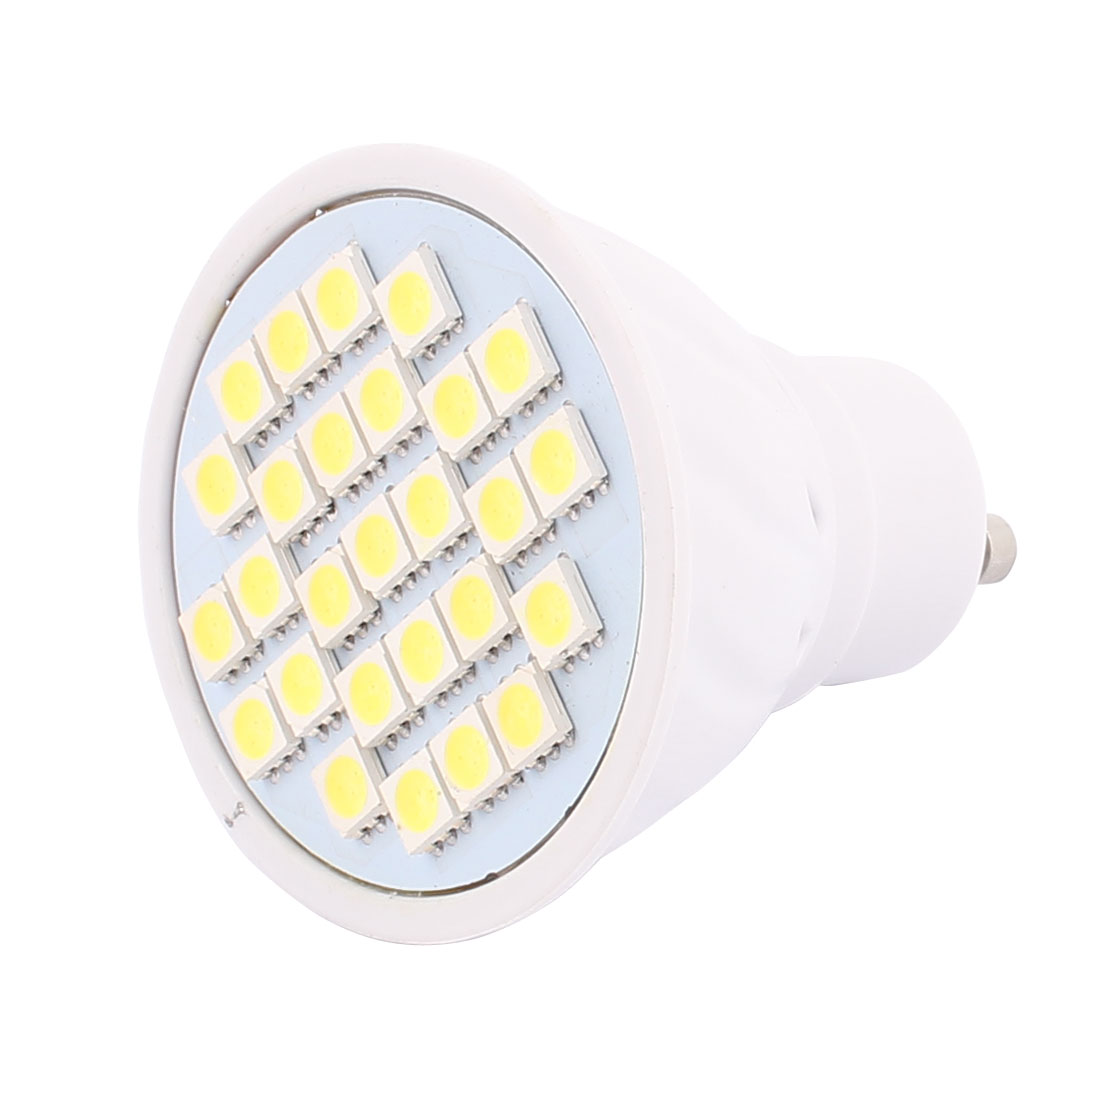 220V-240V GU10 LED Light 4W 5050 SMD 27 LEDs Spotlight Down Lamp Bulb Energy Saving Pure White